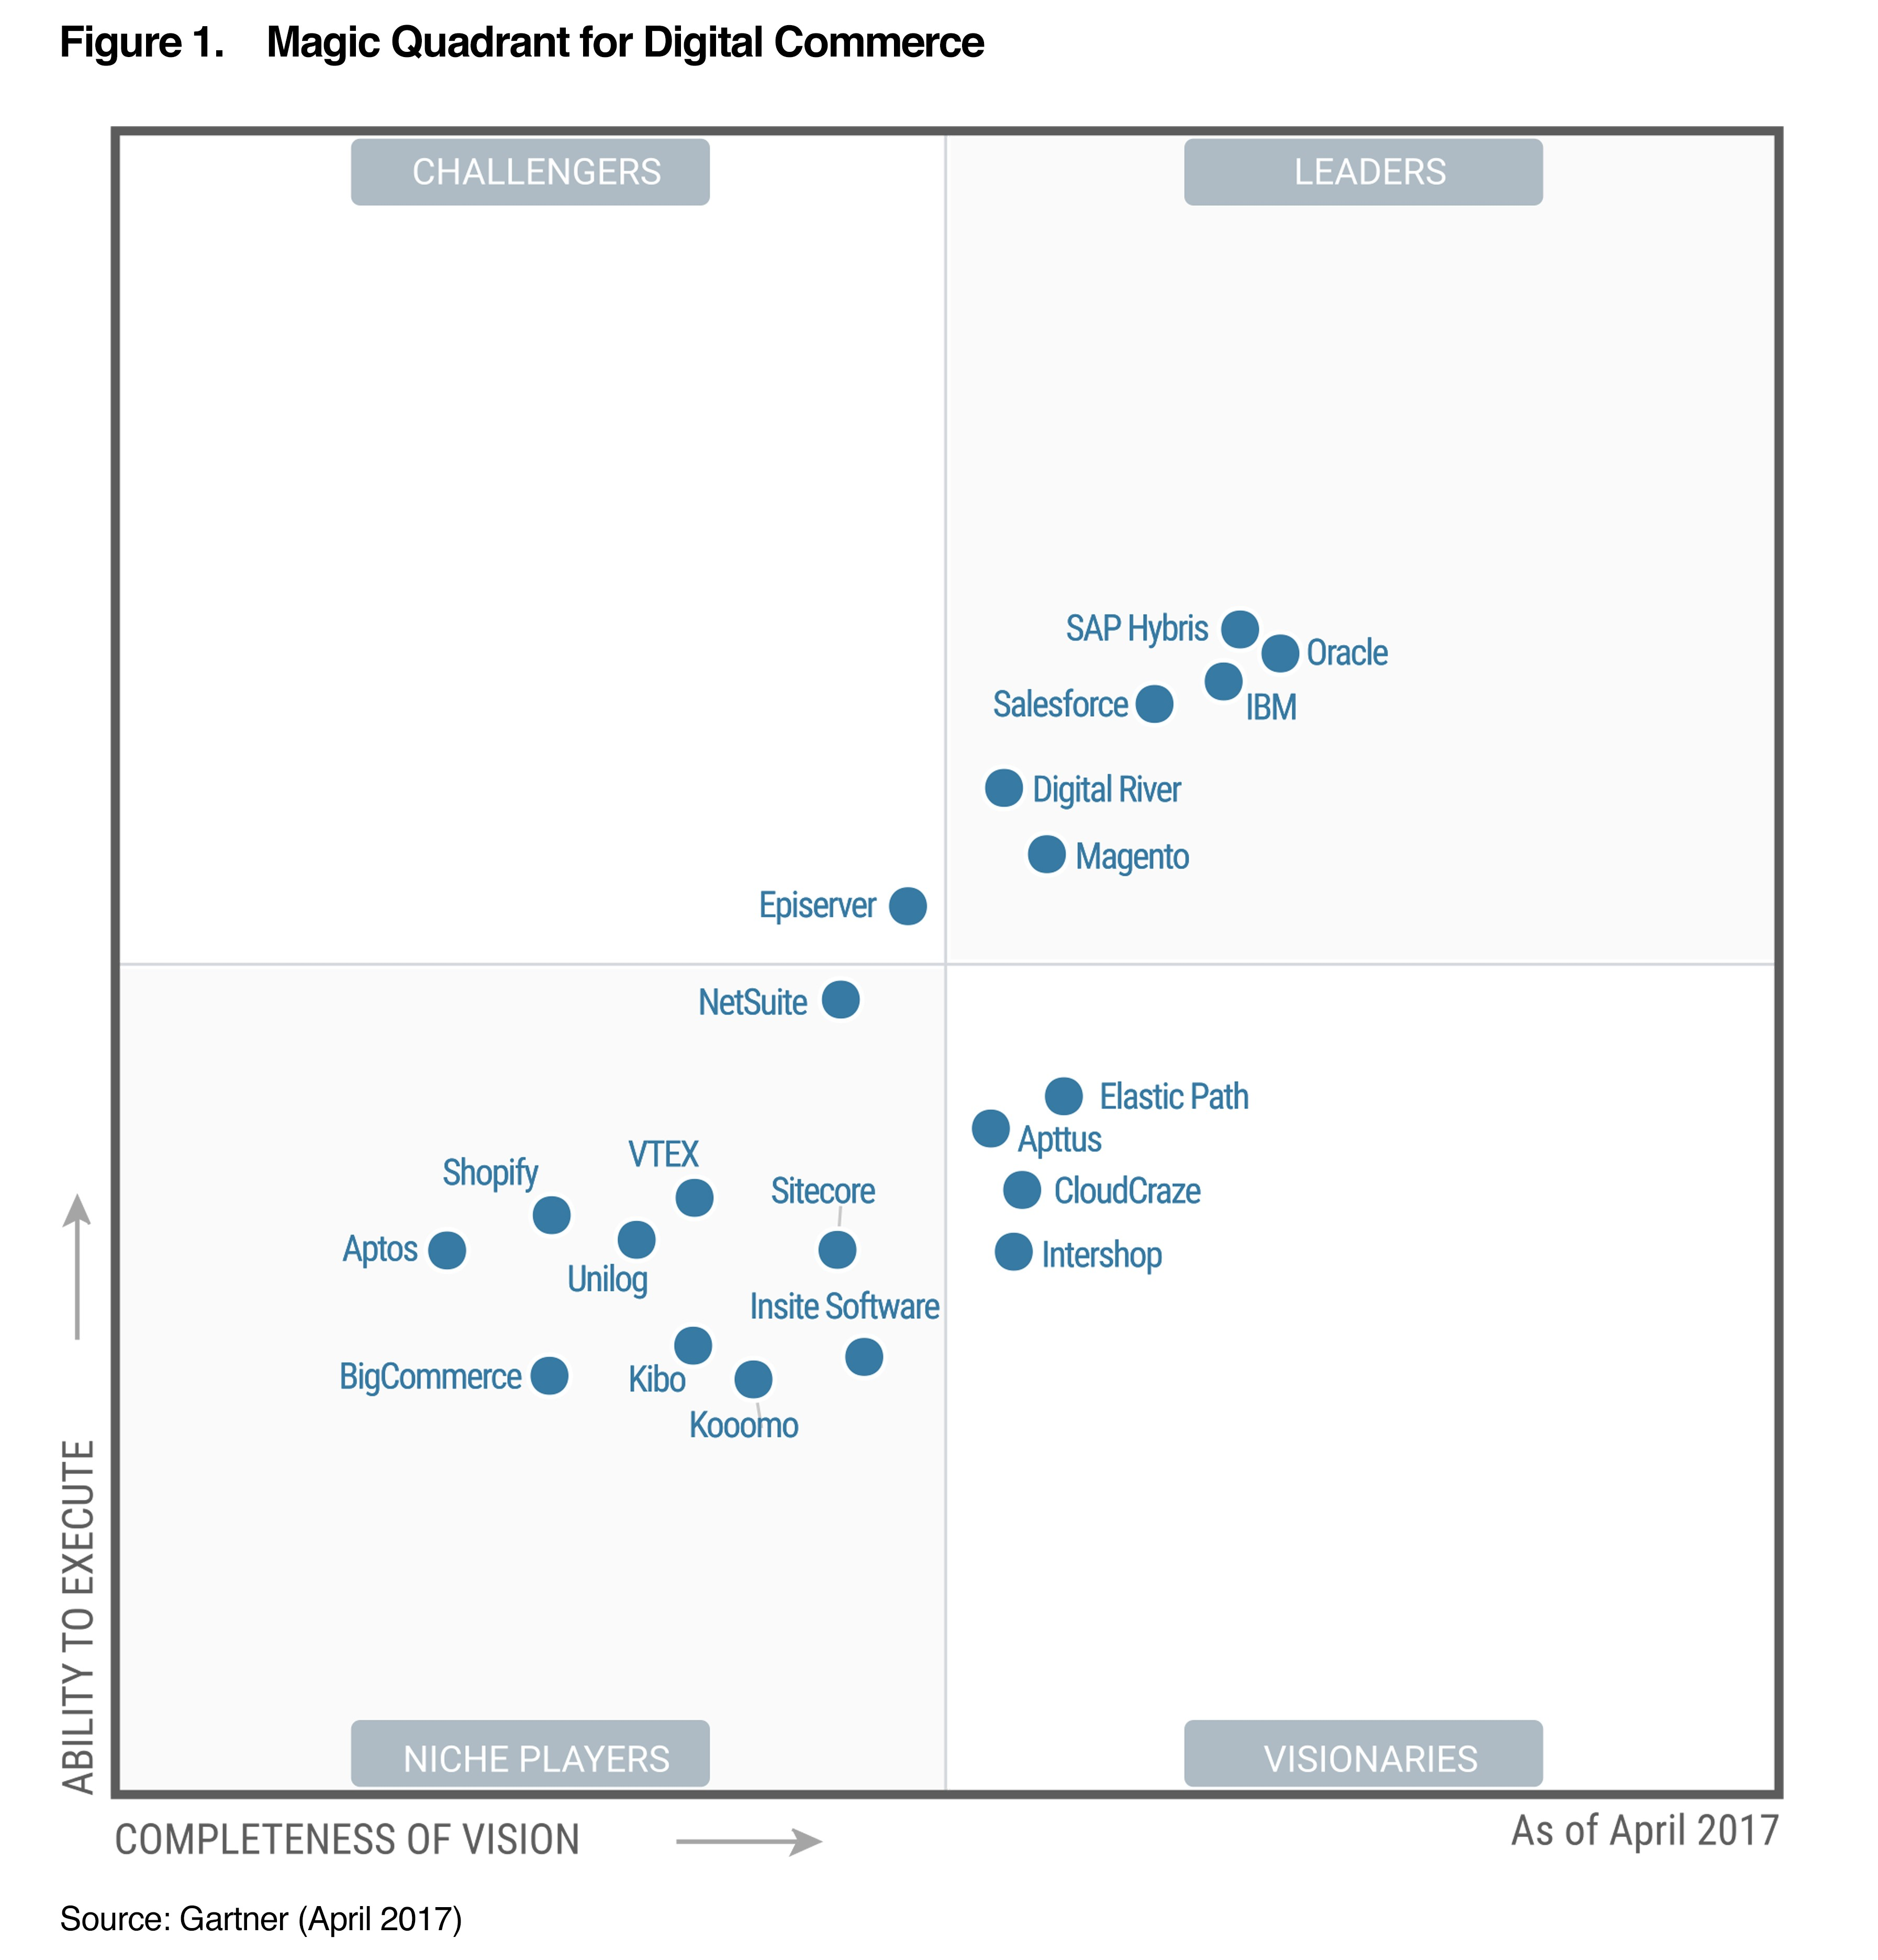 worksheet Quadrant 1 magic quadrant for digital commerce kooomo gartner penny gillespie april 2017 this graphic was published by inc as part of a larger research